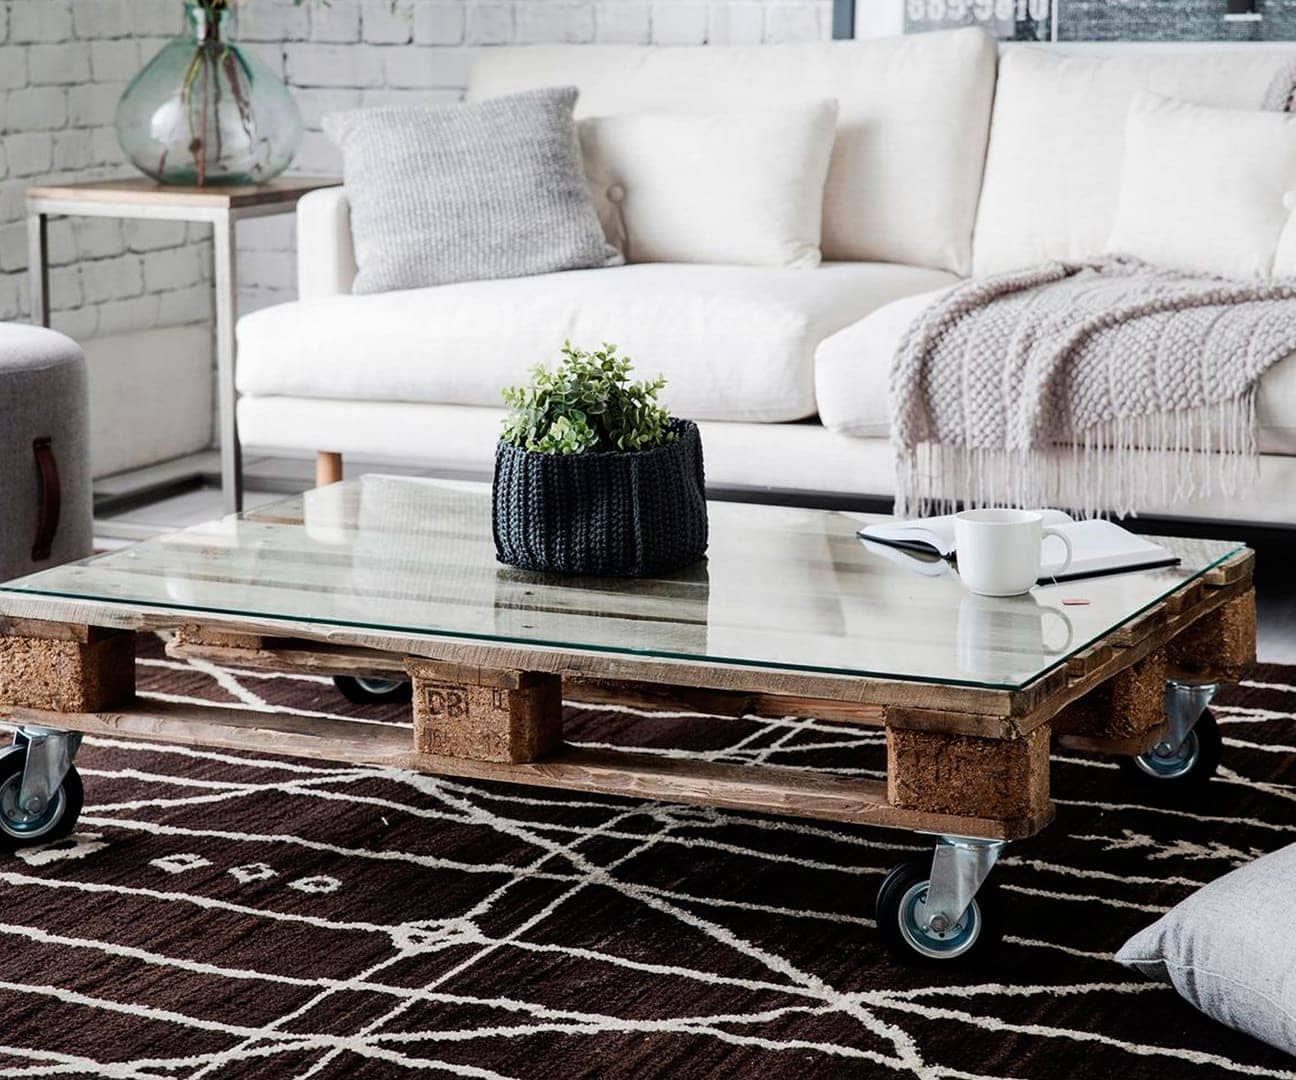 pallet coffee table with castor wheels and glass on top